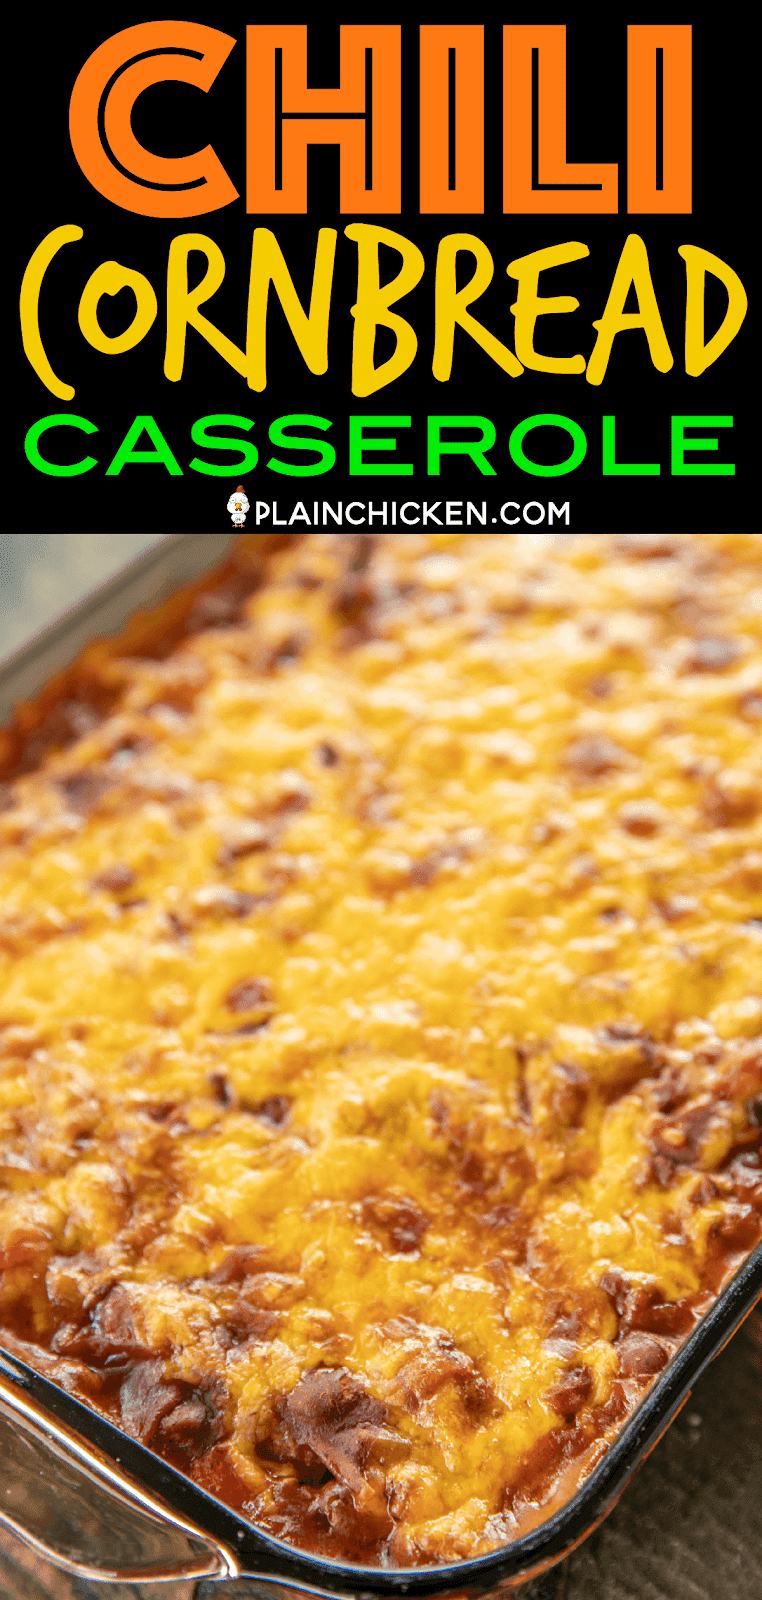 Chili & Cornbread Casserole - sweet cornbread topped with a quick homemade chili and cheese. Comfort food at its best!!! Top with your favorite chili toppings. We like sour cream, fried onions and jalapeños. Jiffy mix, creamed corn, eggs, milk, cheese, ground beef, chili seasoning, diced tomatoes, chili beans, tomato sauce. The whole family LOVED this easy weeknight casserole! It is definitely going into the rotation! #casserole #chili #cornbread #weeknightdinner